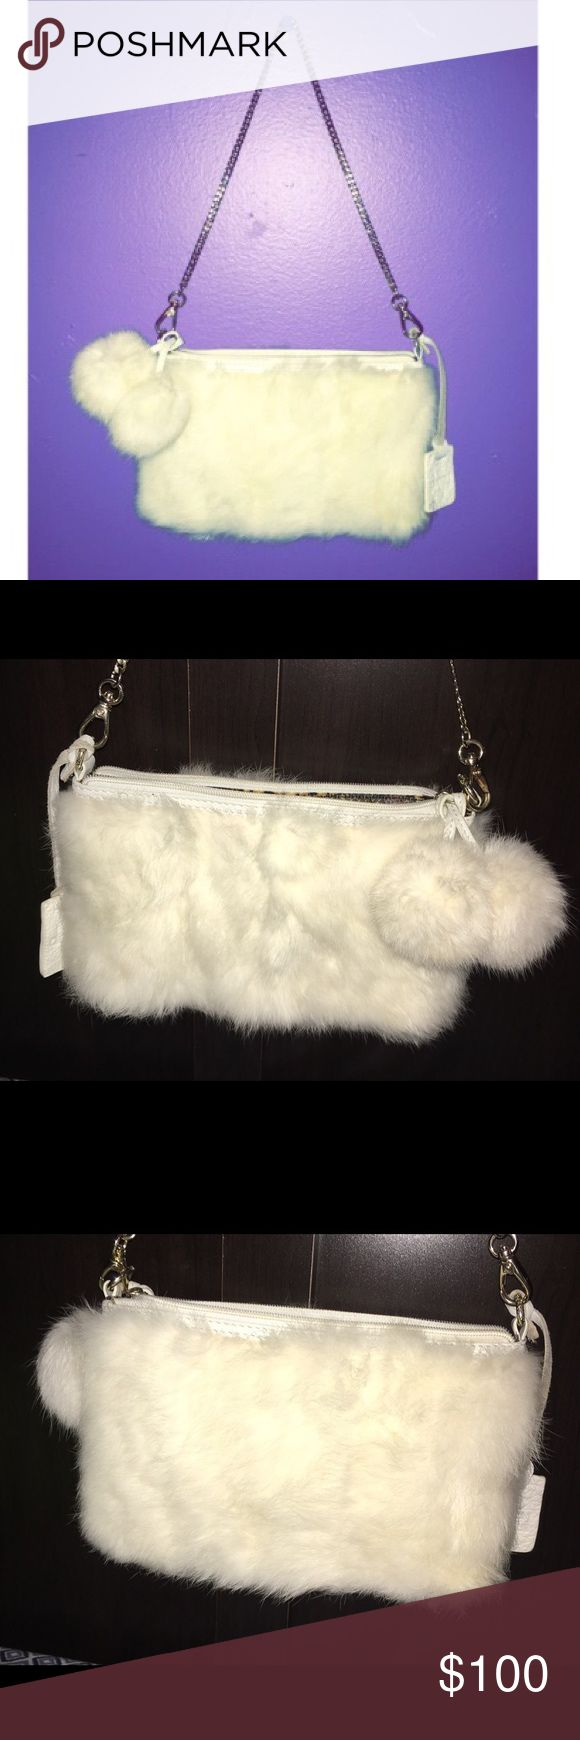 Rabbit Fur Handbag Snakeskin print lining, gold detachable chain, rabbit fur pom poms, rabbit fur & leather hand bag! Exactly as pictured. Flawless except for a very light discoloration of fur on the back right bottom corner, hardly noticable and as you can see its even unnoticable with flash from afar! Might come out but i know nothing about how to do so myself so i never tried in fear of messing it up lol. Purchased with matching boots seen in last photo, but i never use small bags Bags